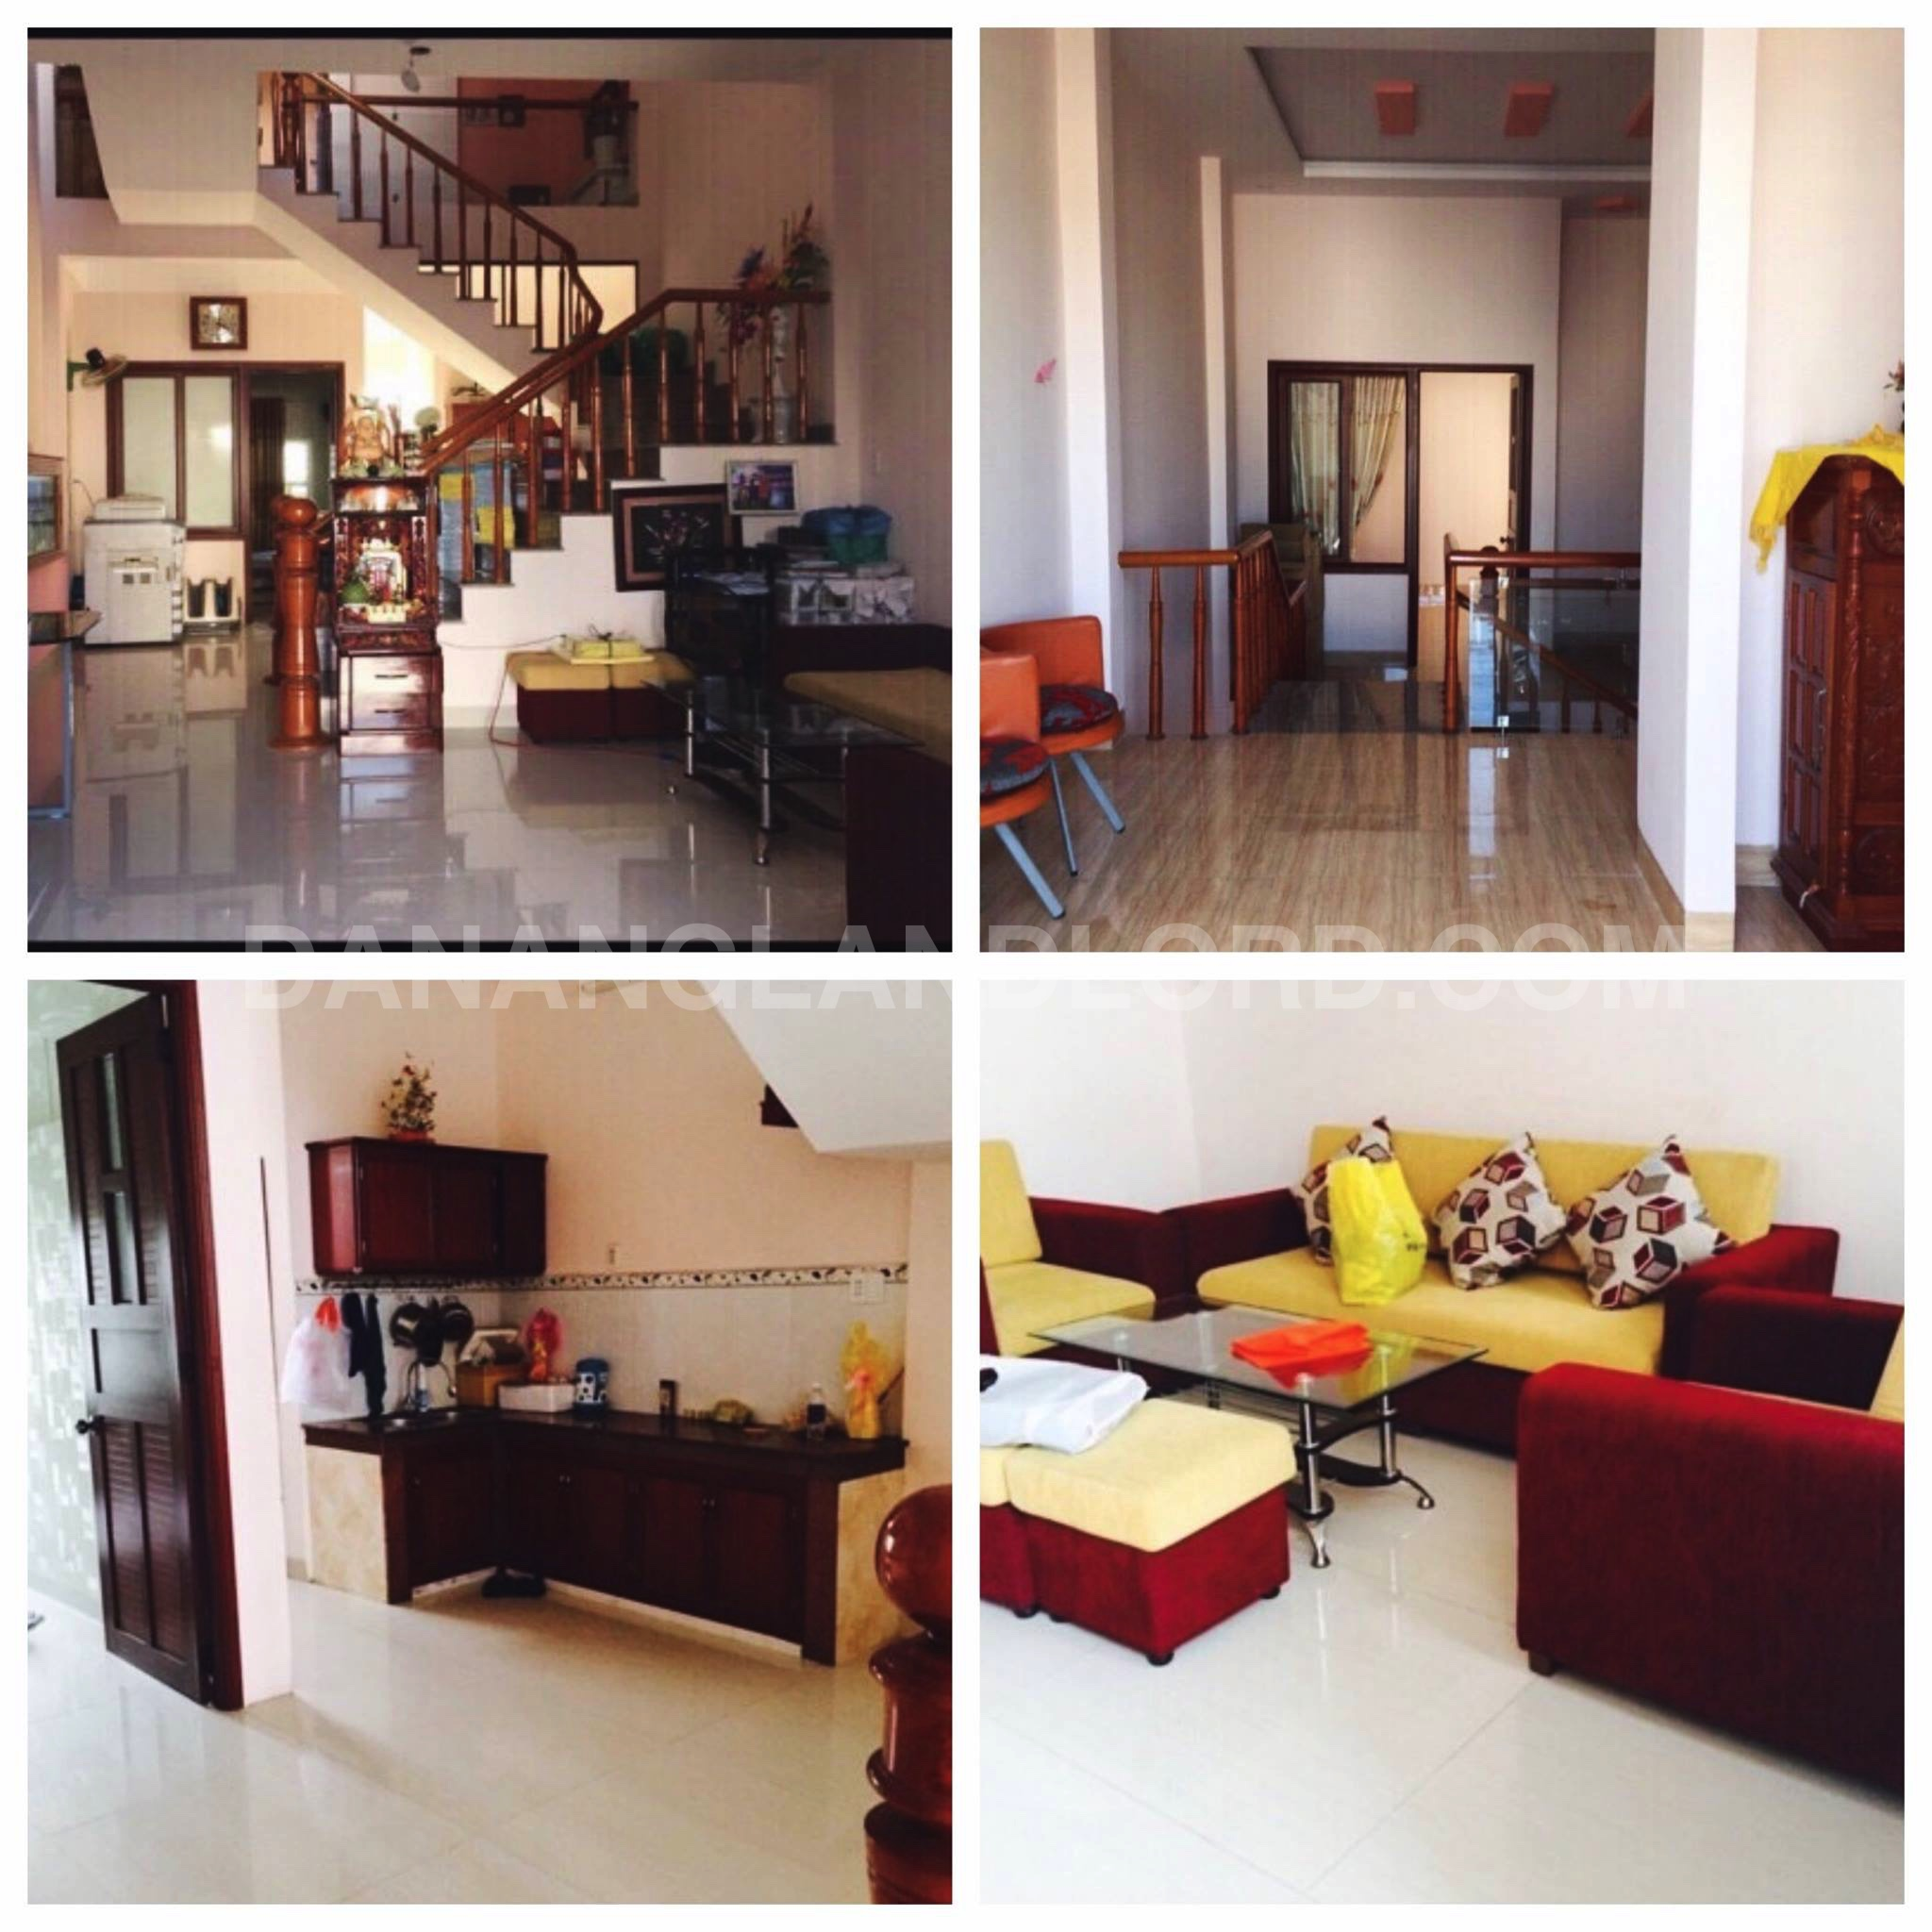 House for rent with 2 bedrooms, fully furniture, near Dragon Bridge